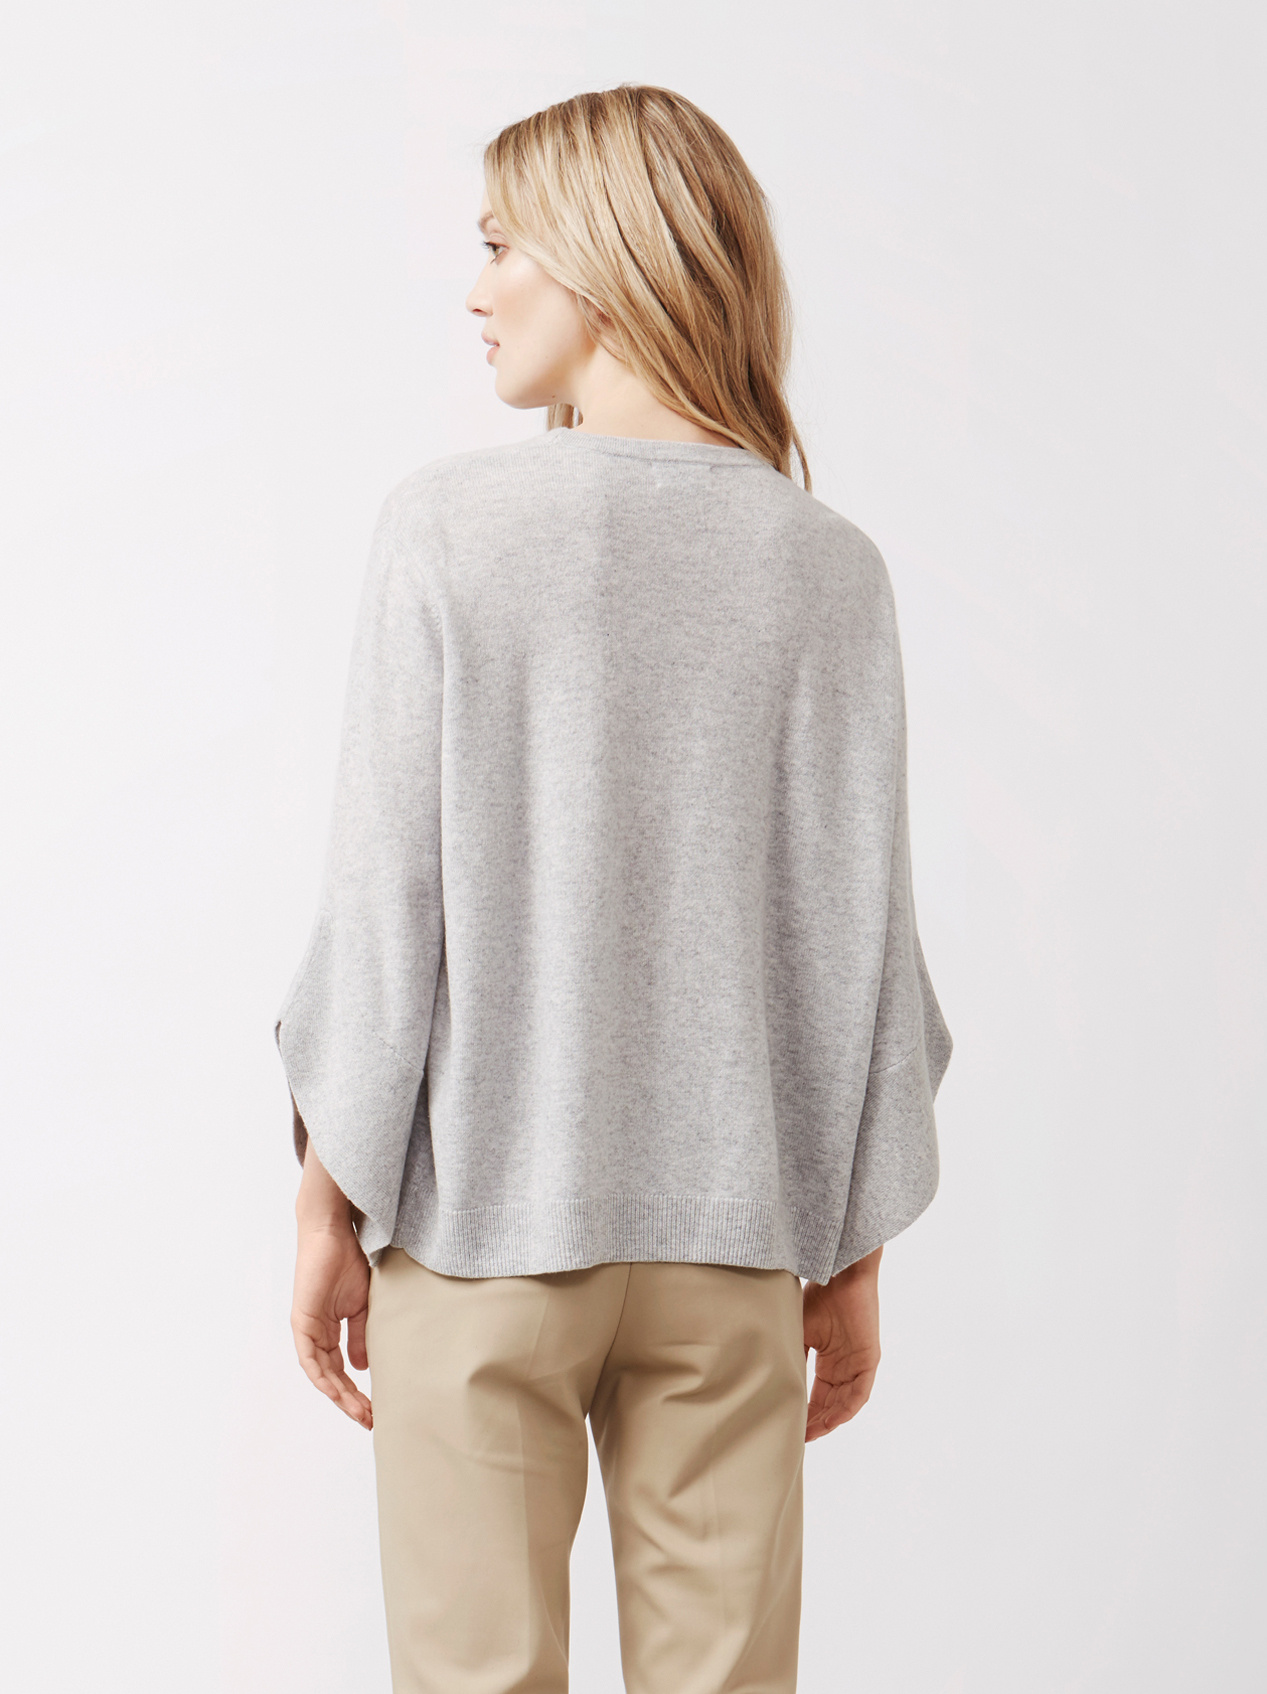 Soft Goat Women's Tulip Arm Sweater Light Grey